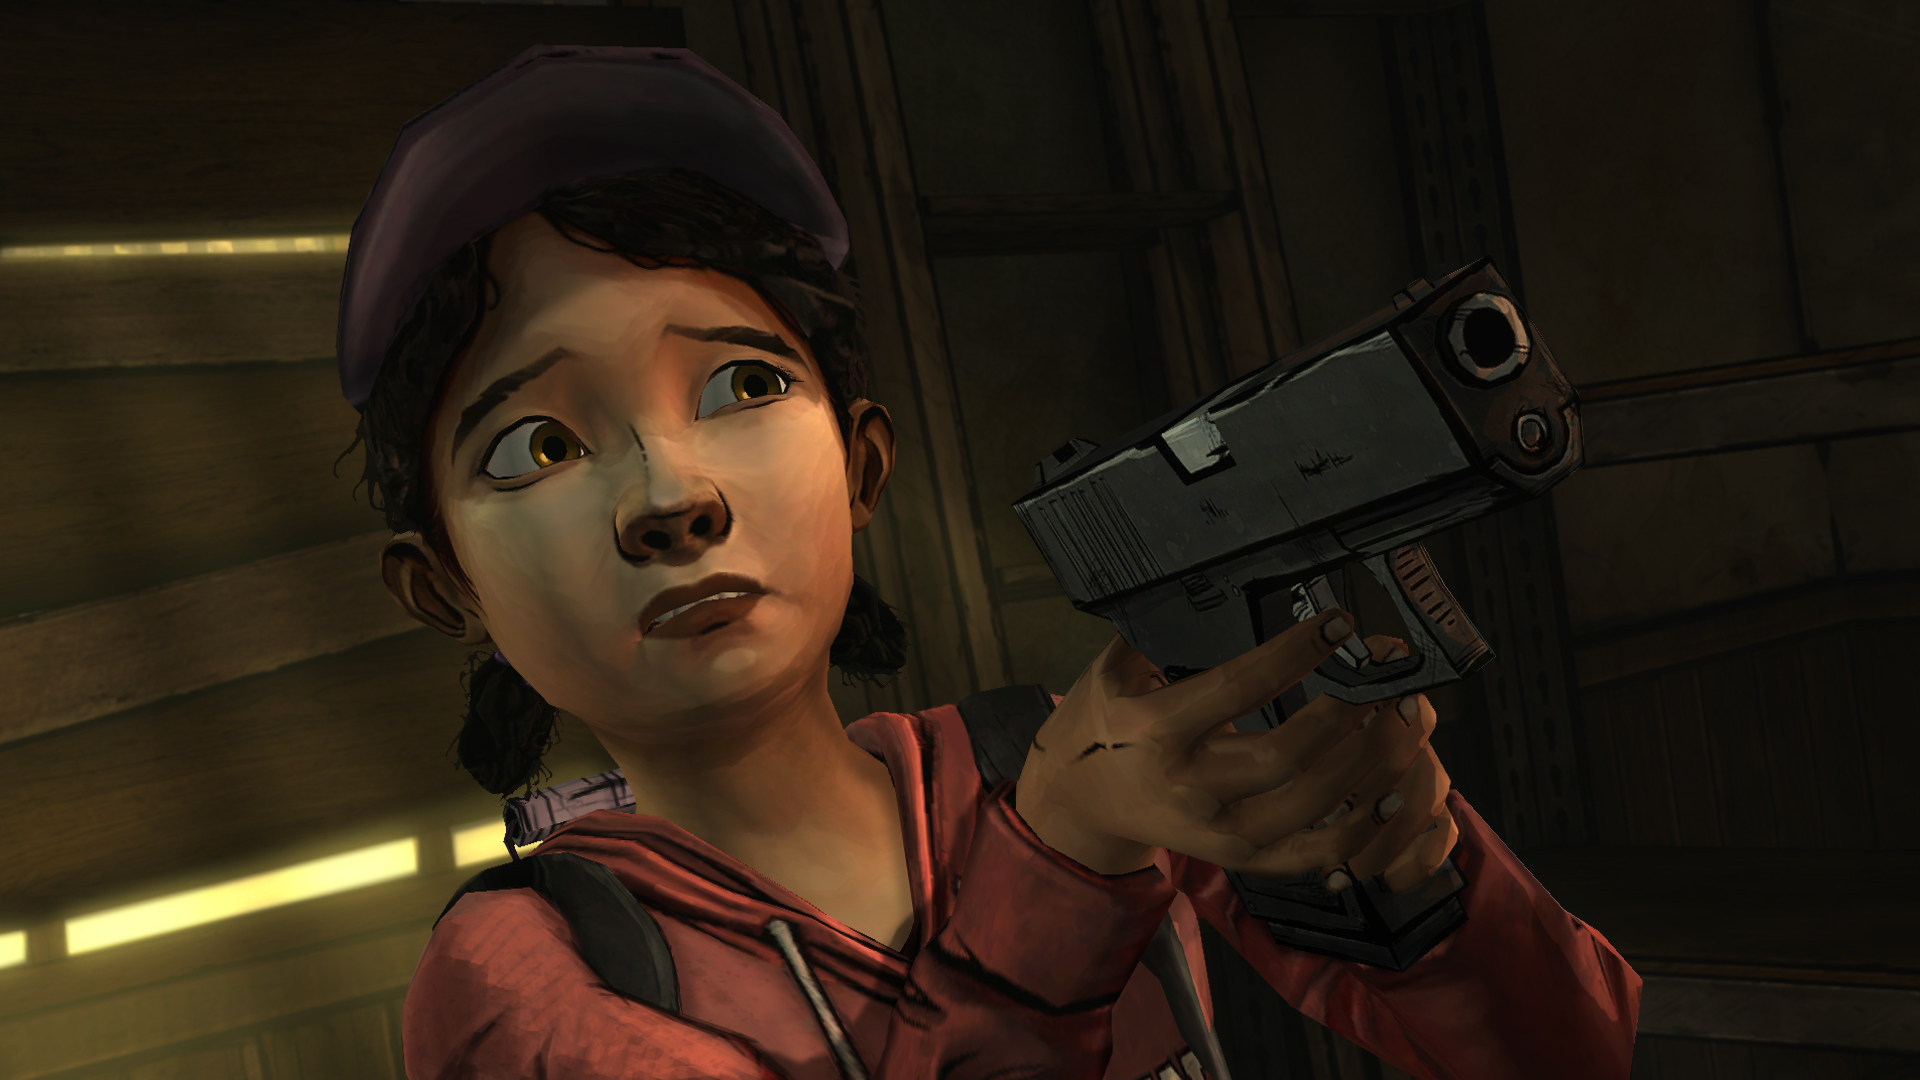 file_202617_4_thewalkingdeadclementine